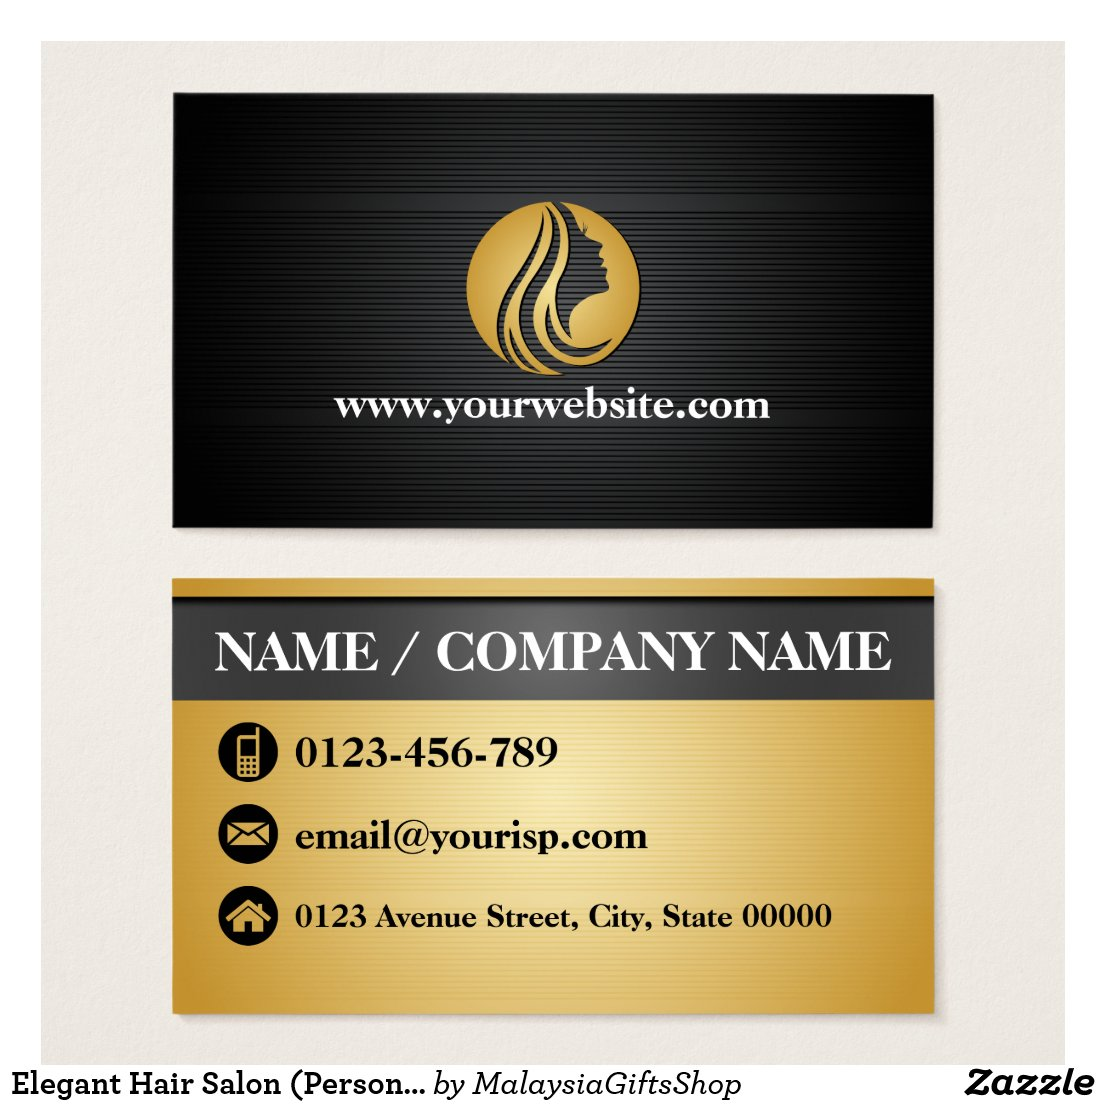 Elegant Hair Salon (Personalize) Business Card